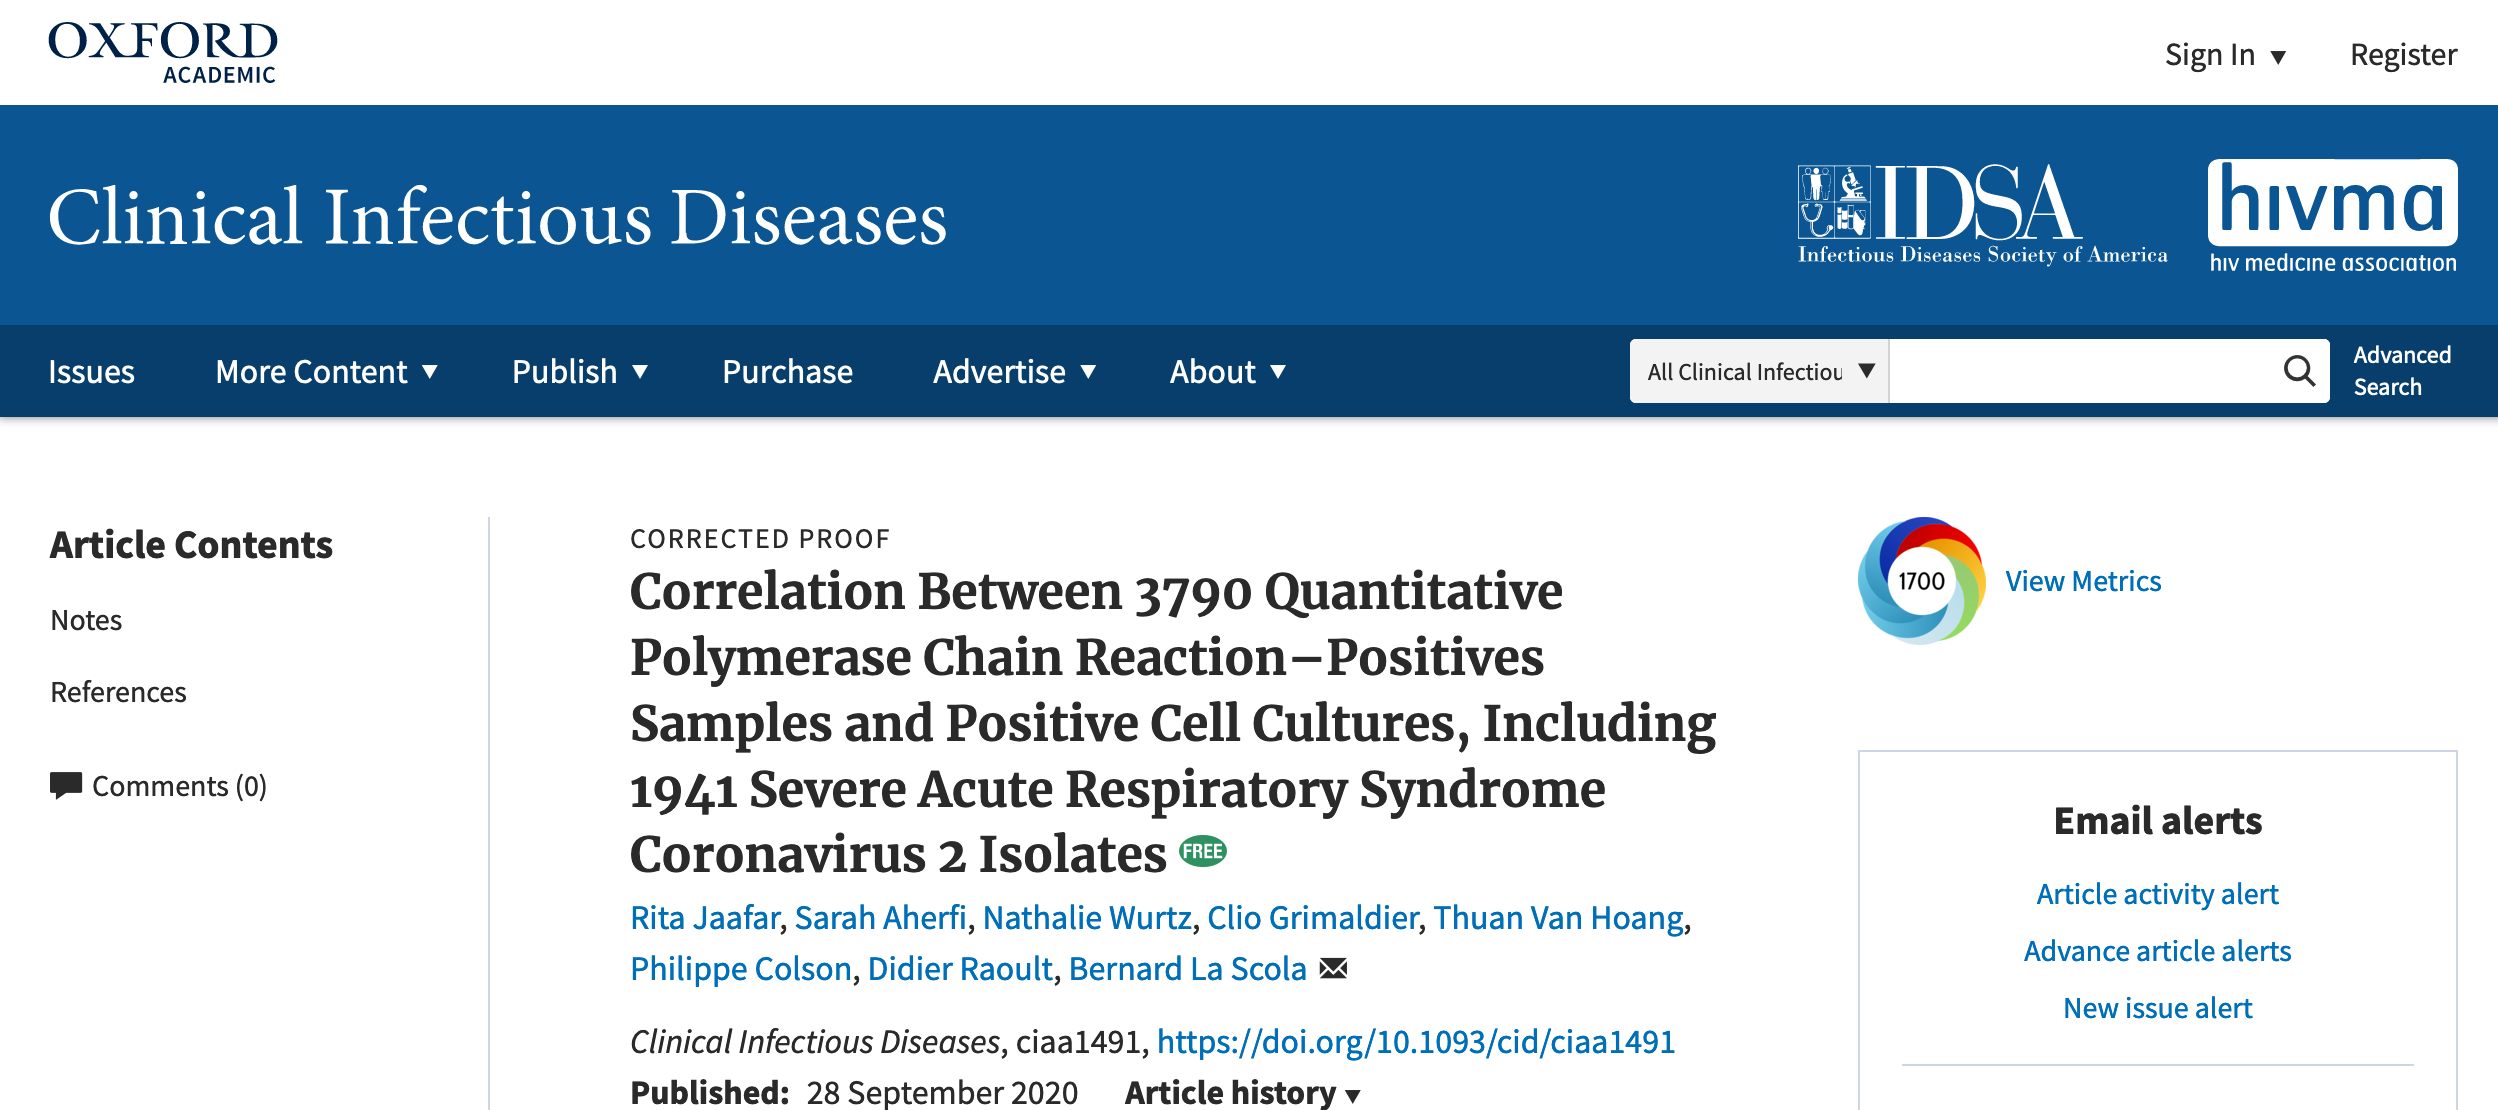 Correlation Between 3790 Quantitative Polymerase Chain Reaction–Positives Samples and Positive Cell Cultures, Including 1941 Severe Acute Respiratory Syndrome Coronavirus 2 Isolates